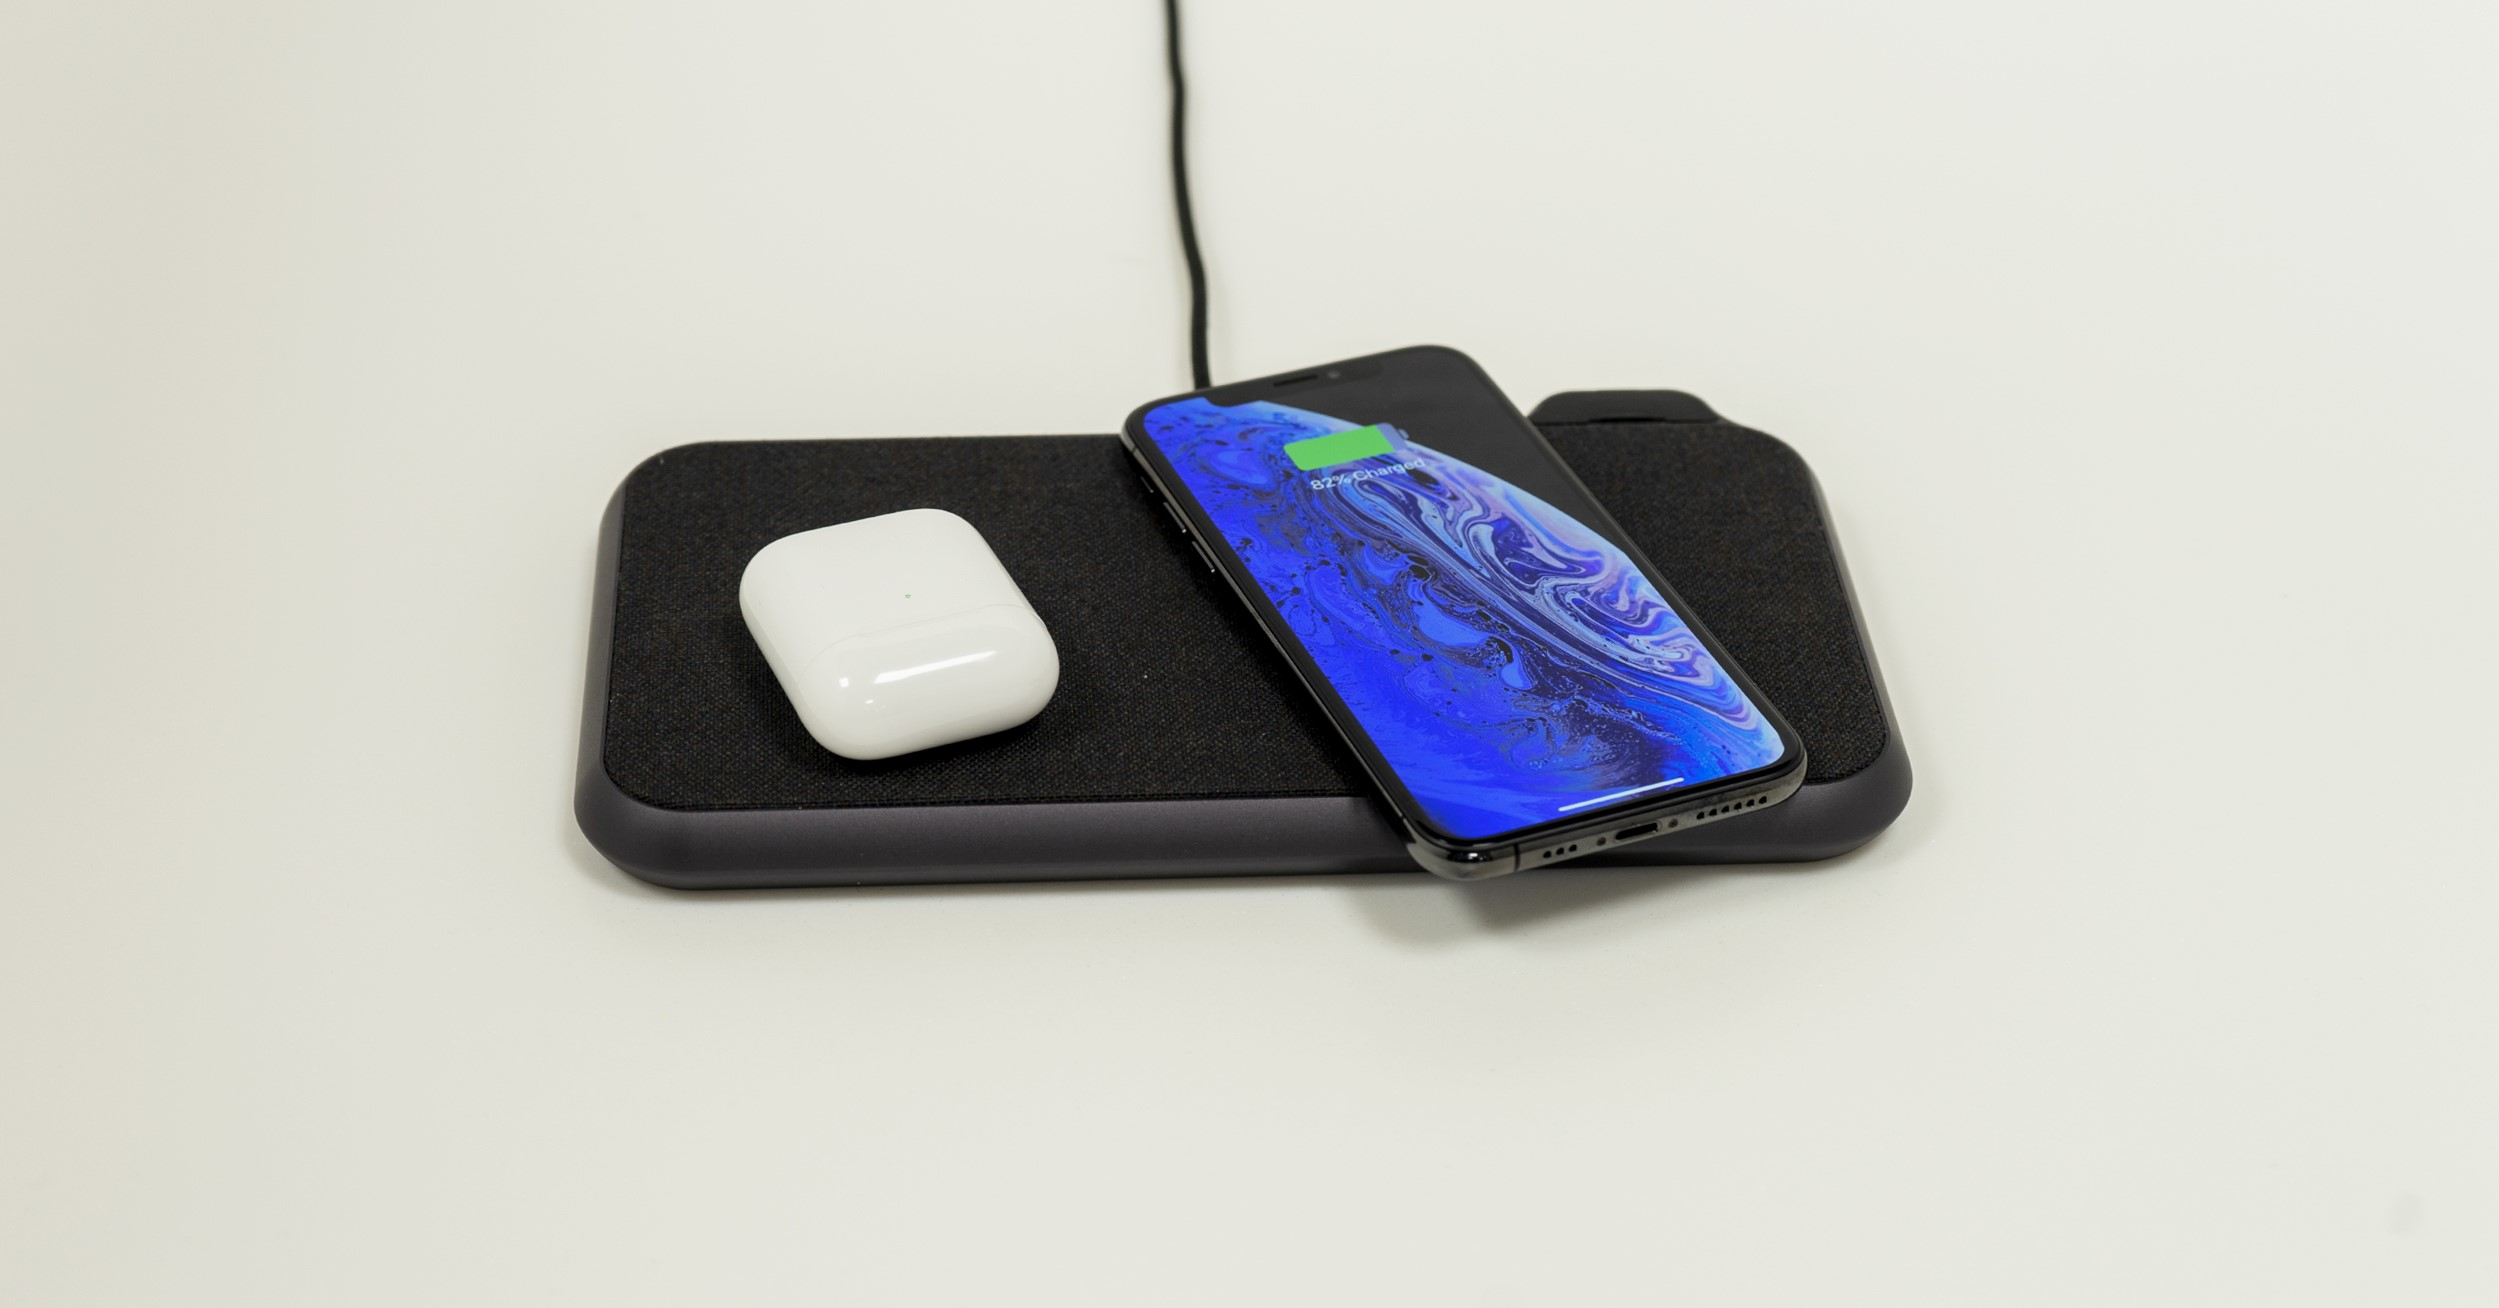 ZENS LIBERTY 16-coils wireless charger, Kvadrat edition with Apple AirPods and iPhone Xs